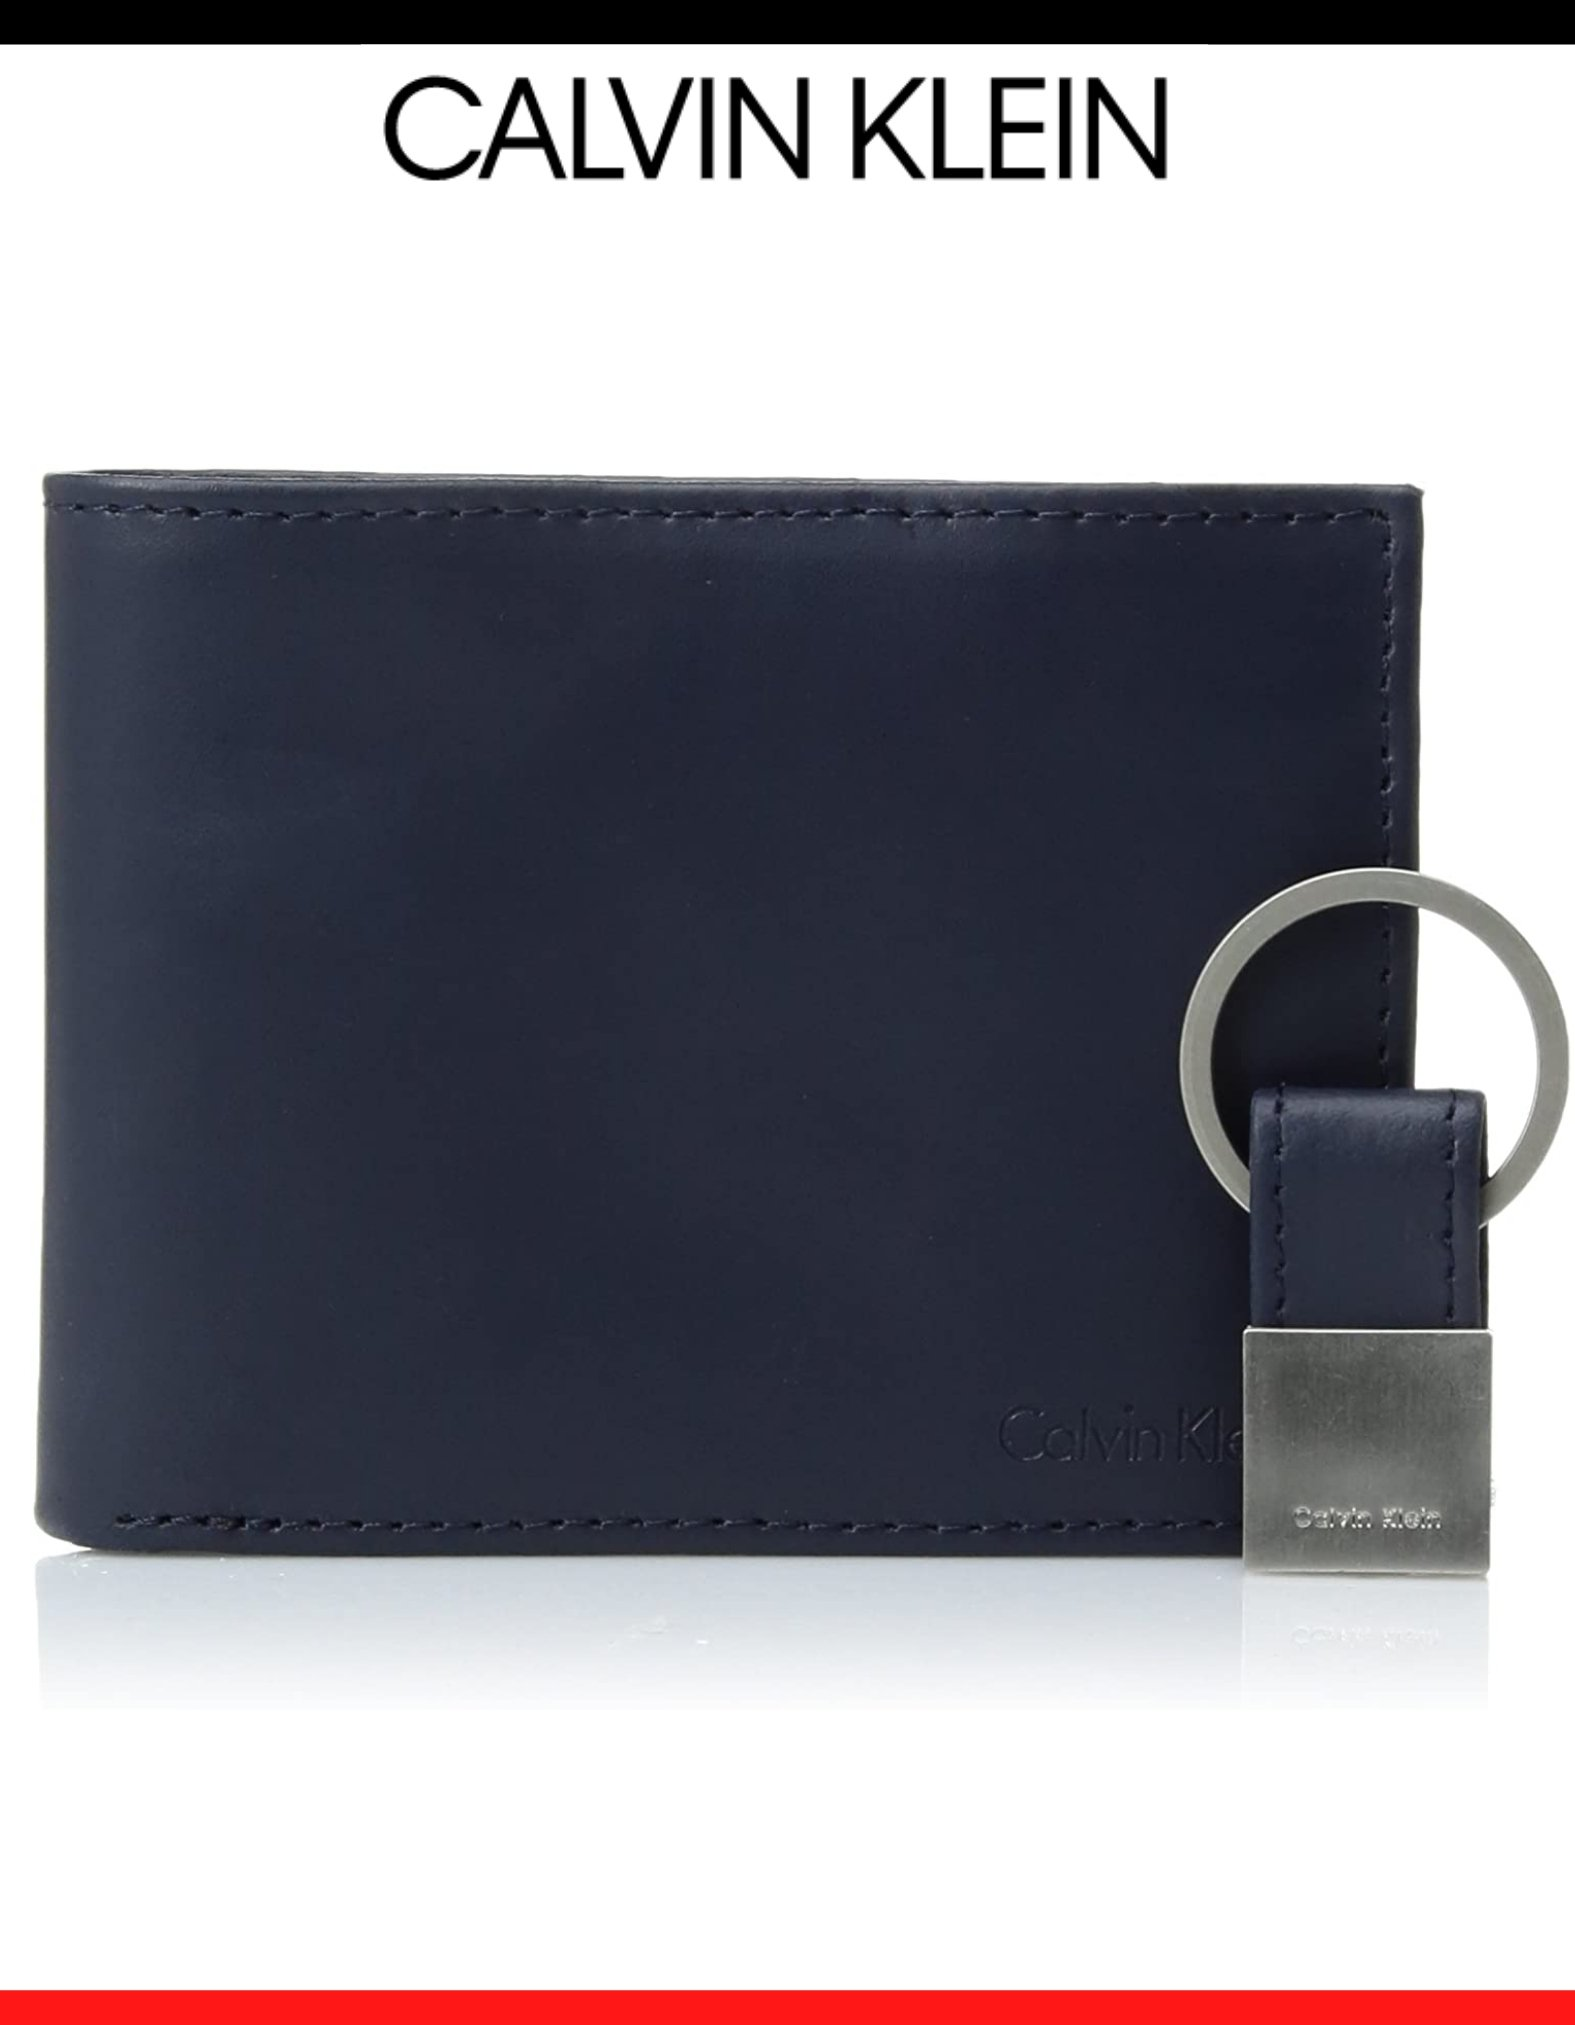 Calvin Klein Men's Wallet